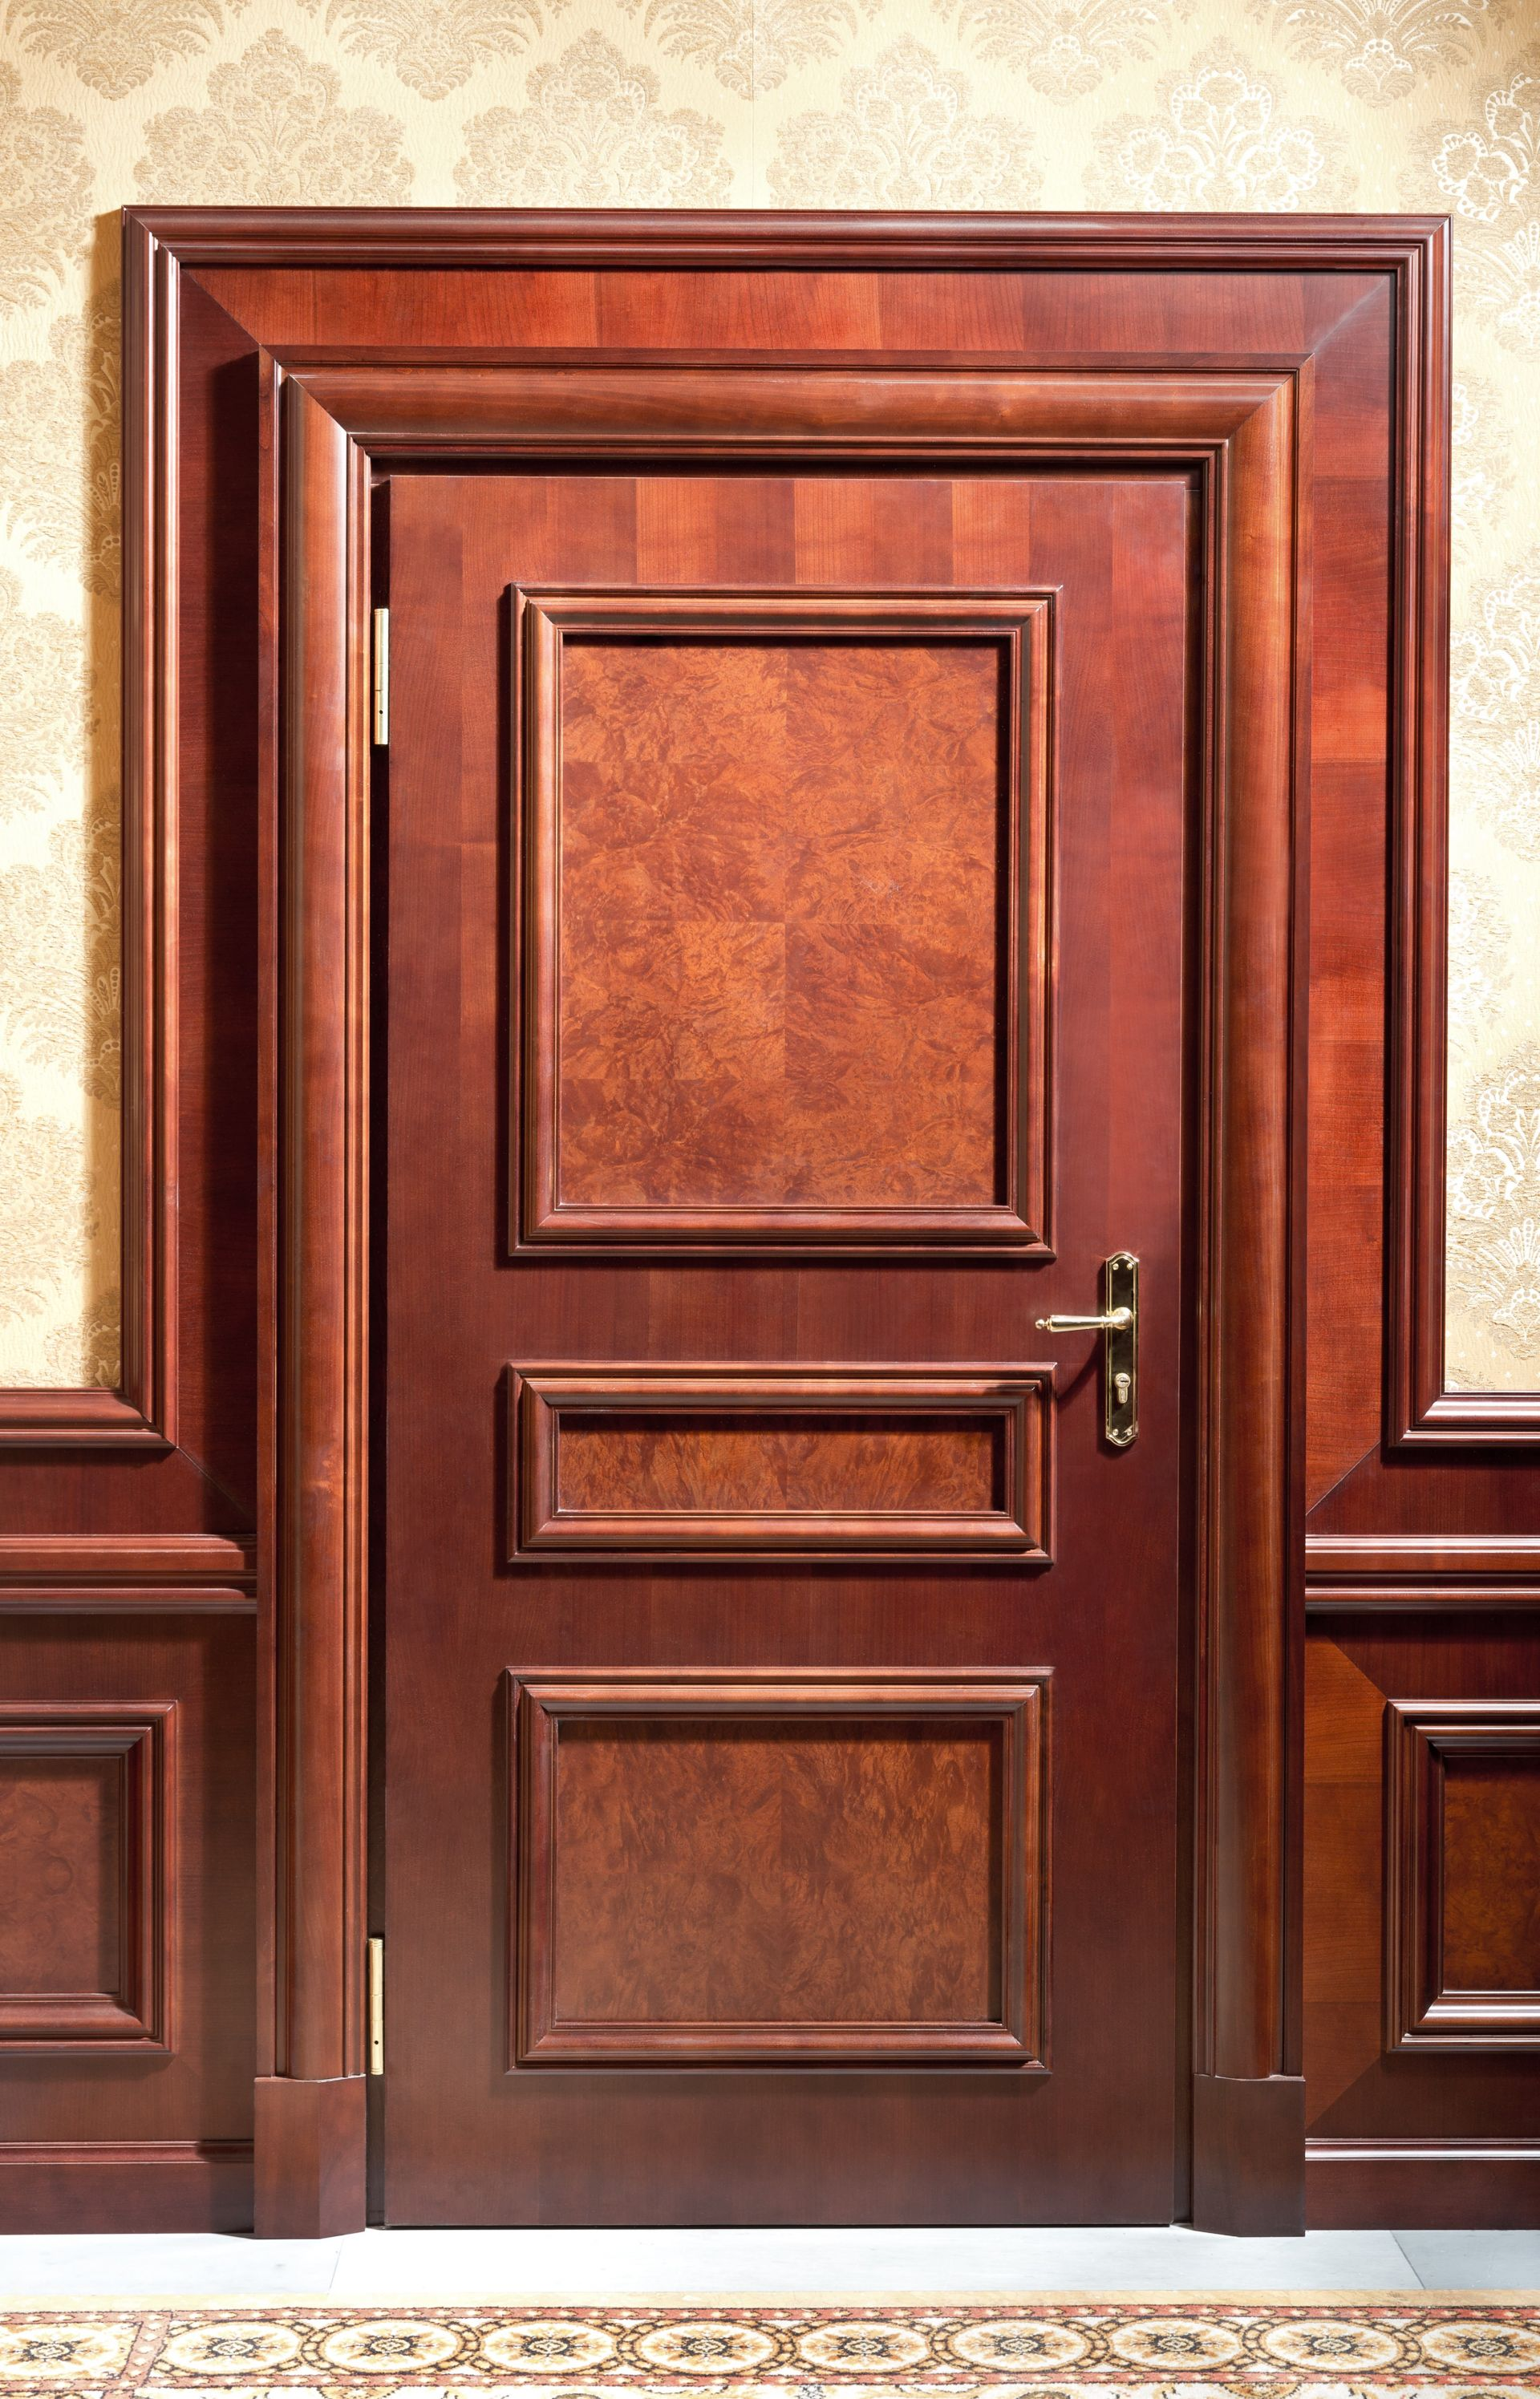 Wooden door at the Fairmont Grand Hotel